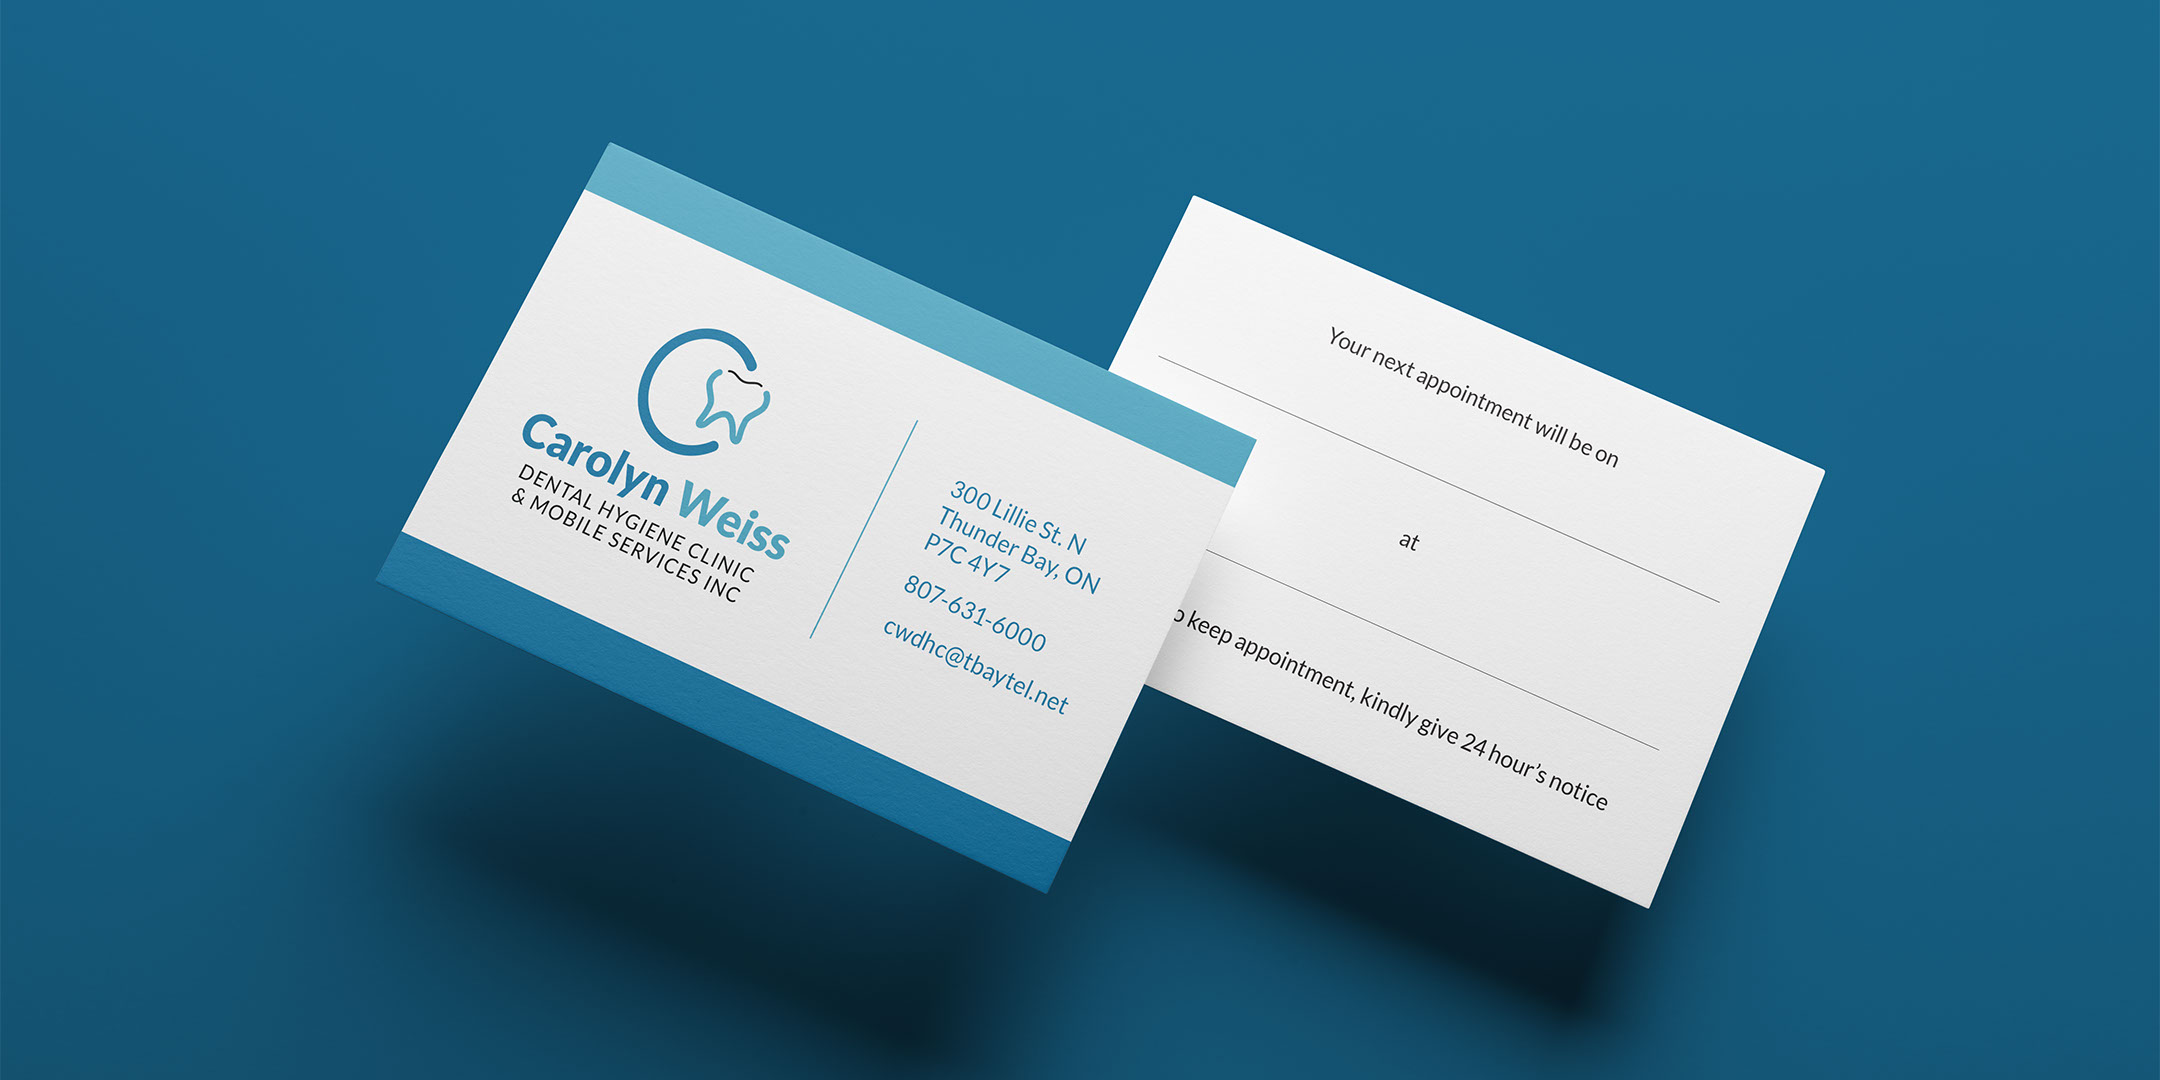 Carolyn Weiss business card front & back